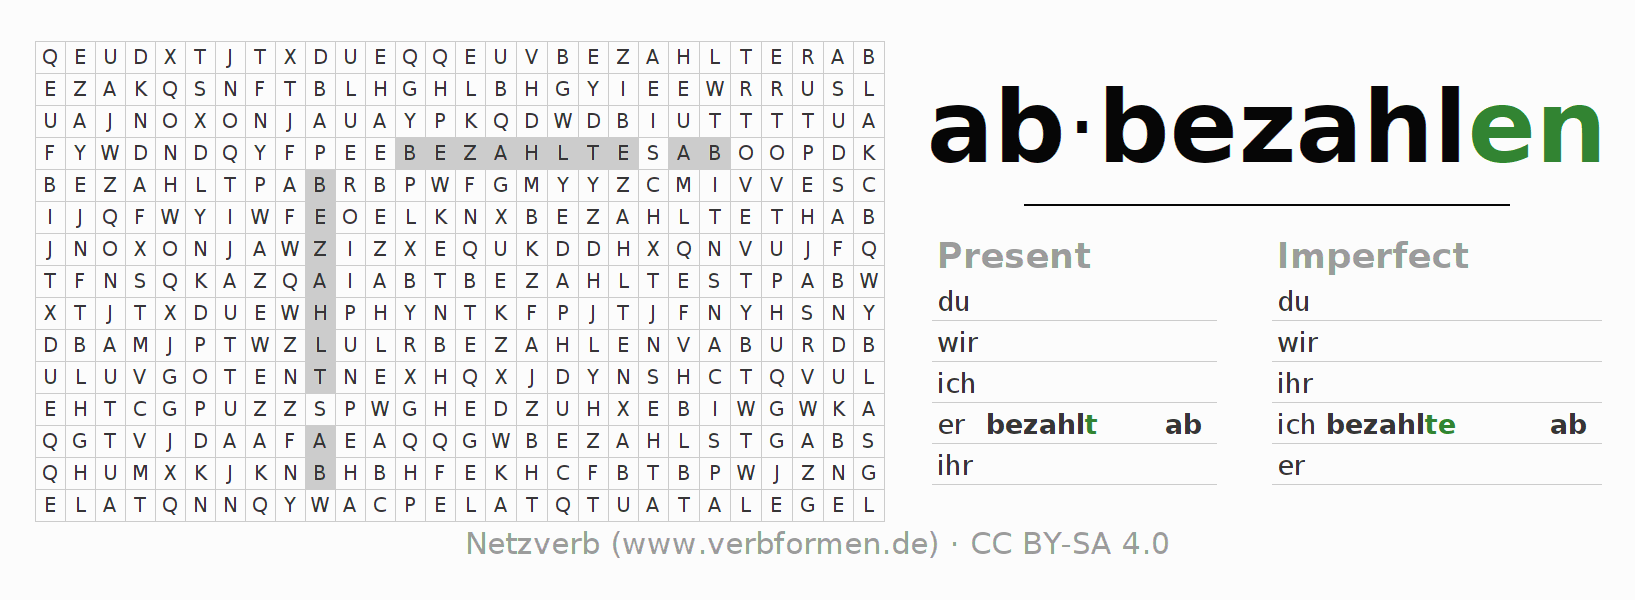 Word search puzzle for the conjugation of the verb abbezahlen